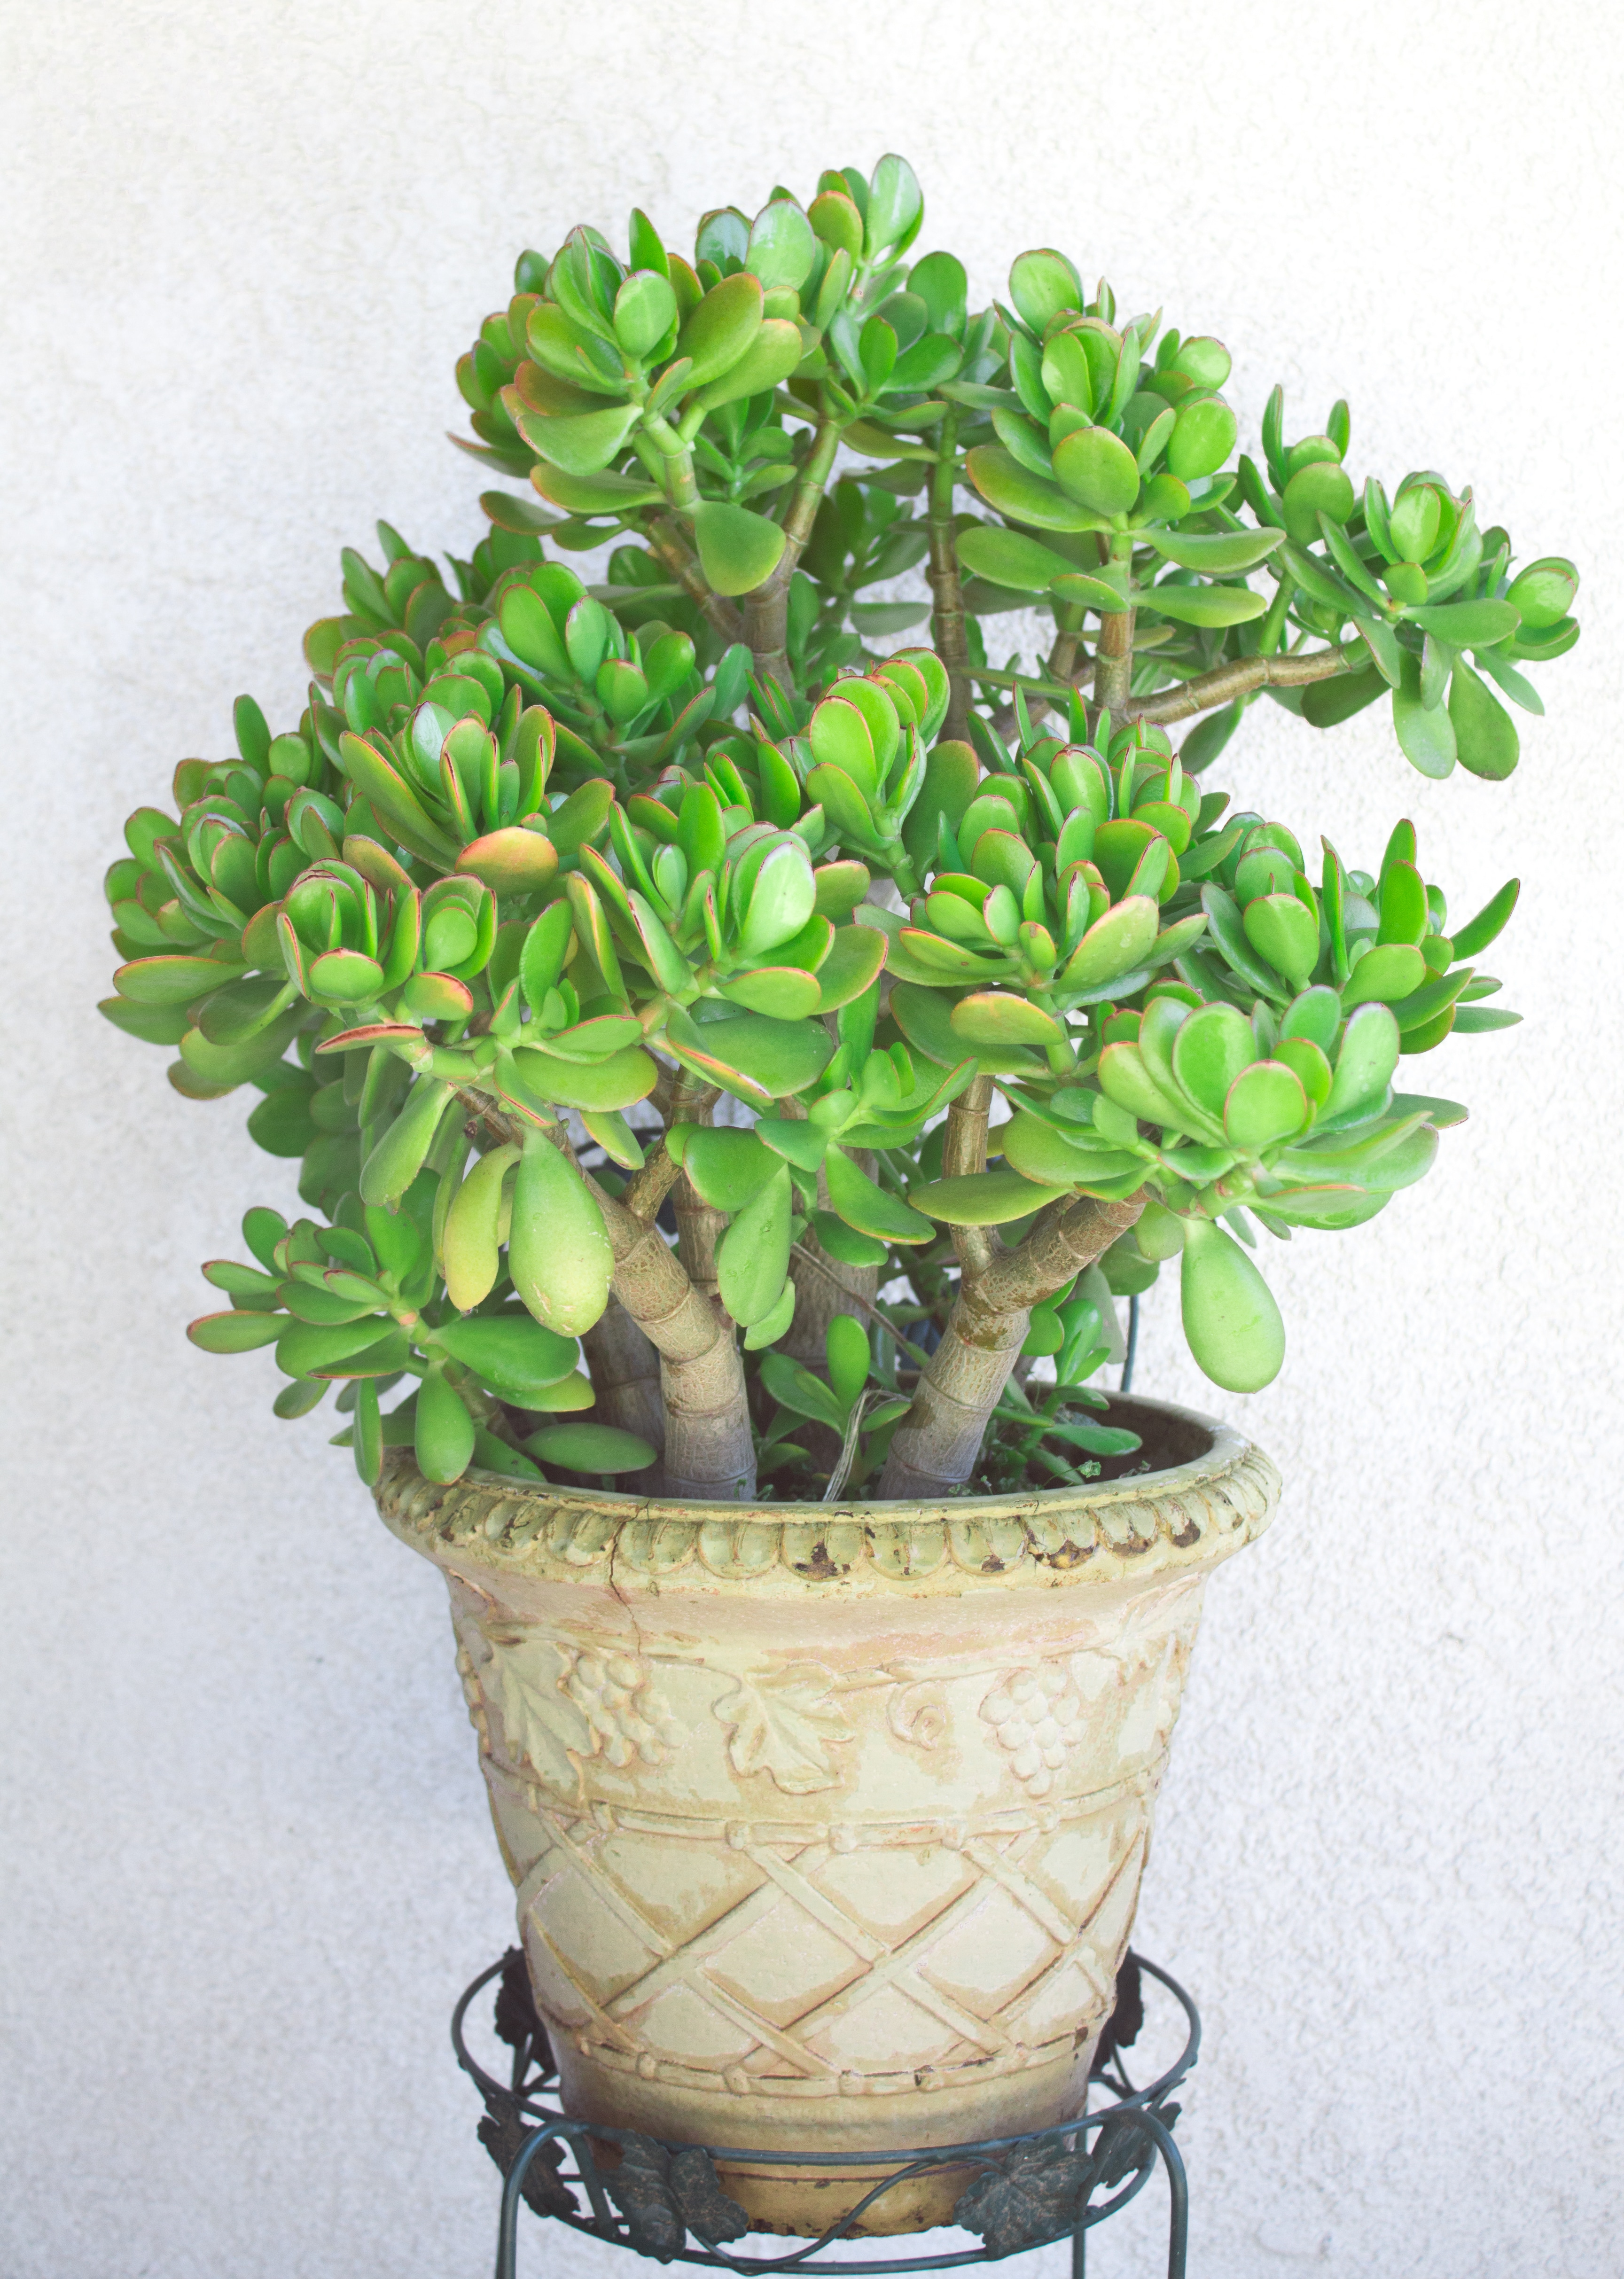 How To Care For A Jade Plant Natalie Linda